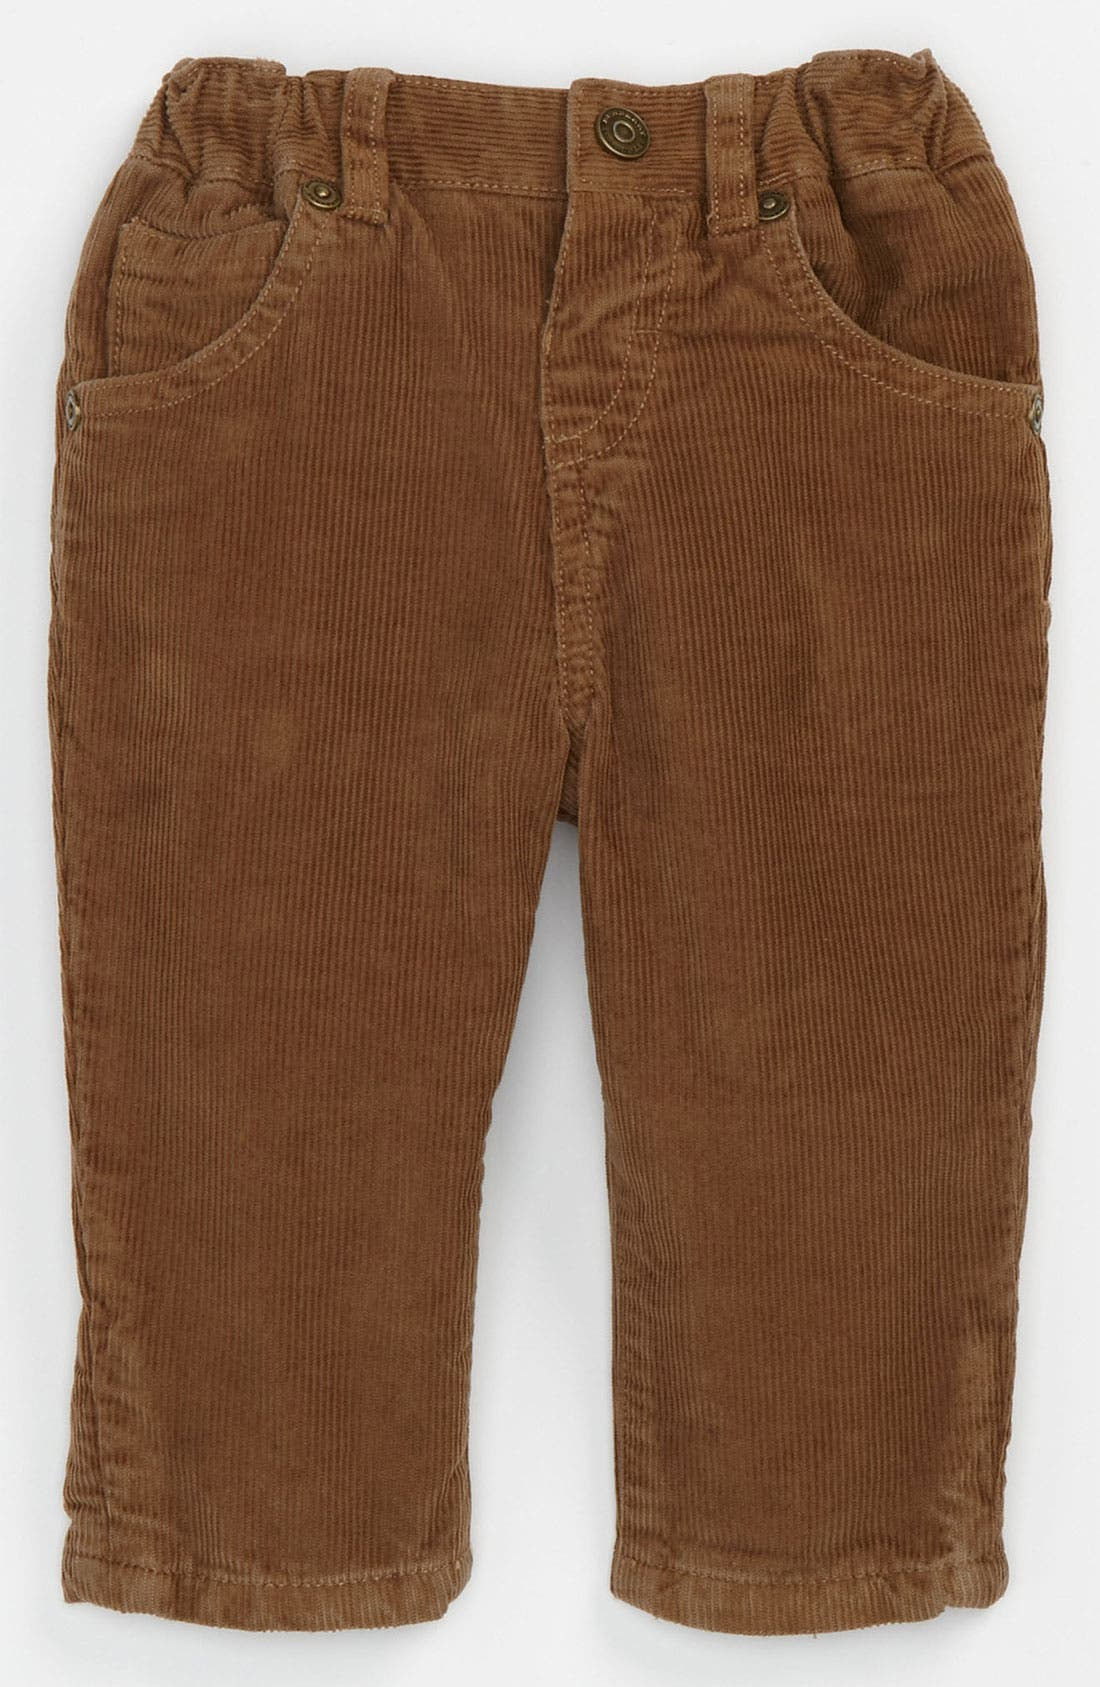 Alternate Image 1 Selected - Burberry Corduroy Pants (Infant)